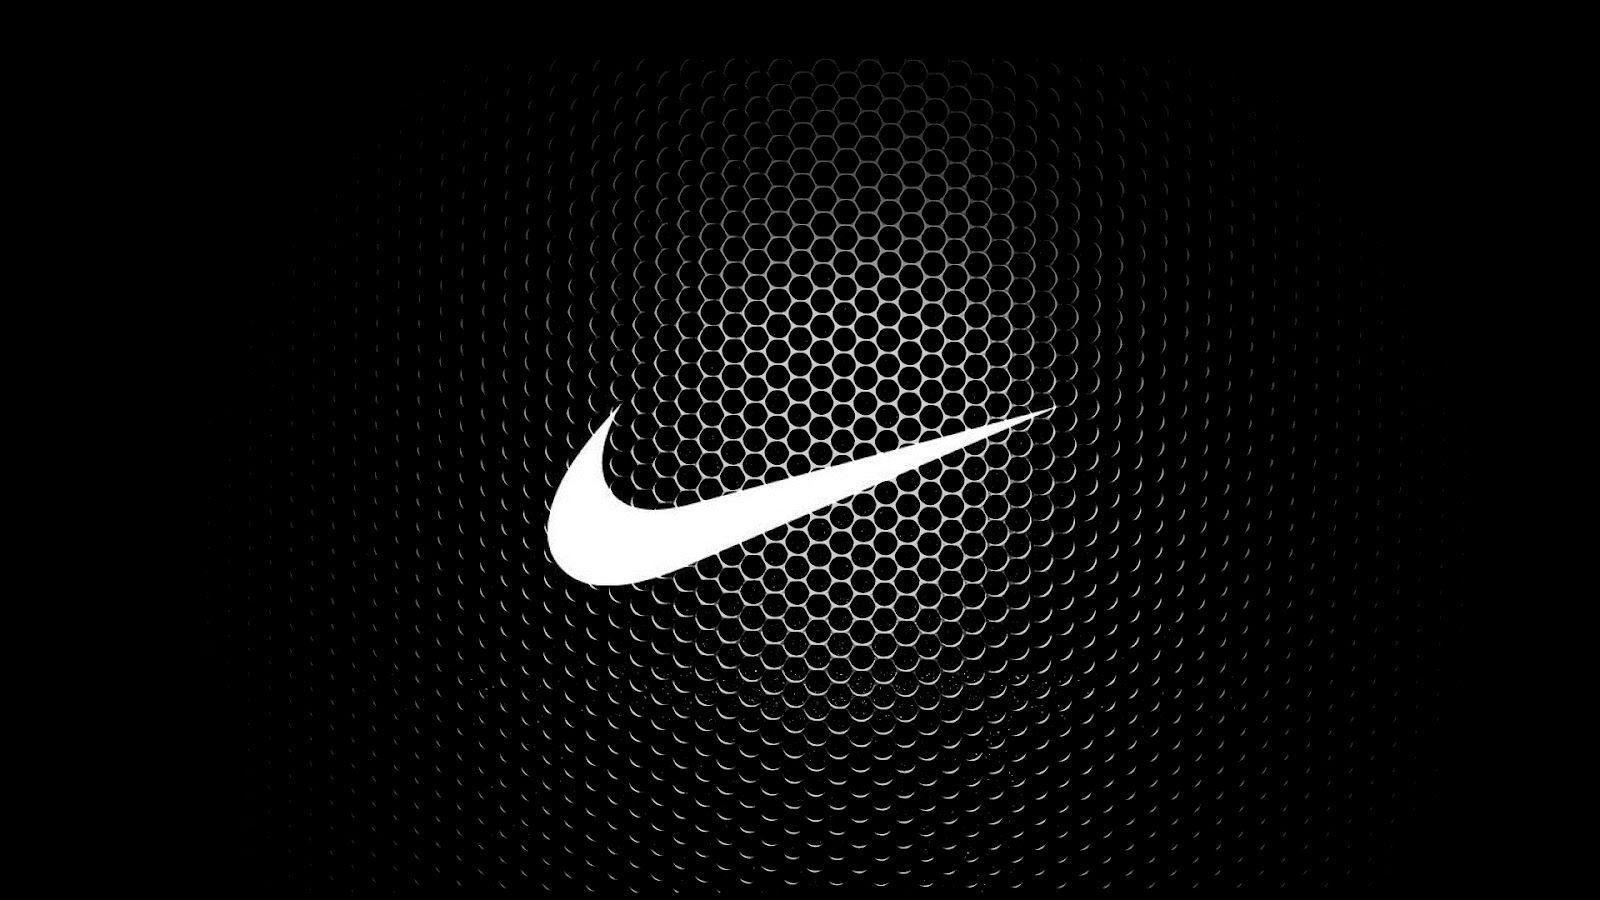 Wallpapers For Nike Wallpaper Iphone Quote